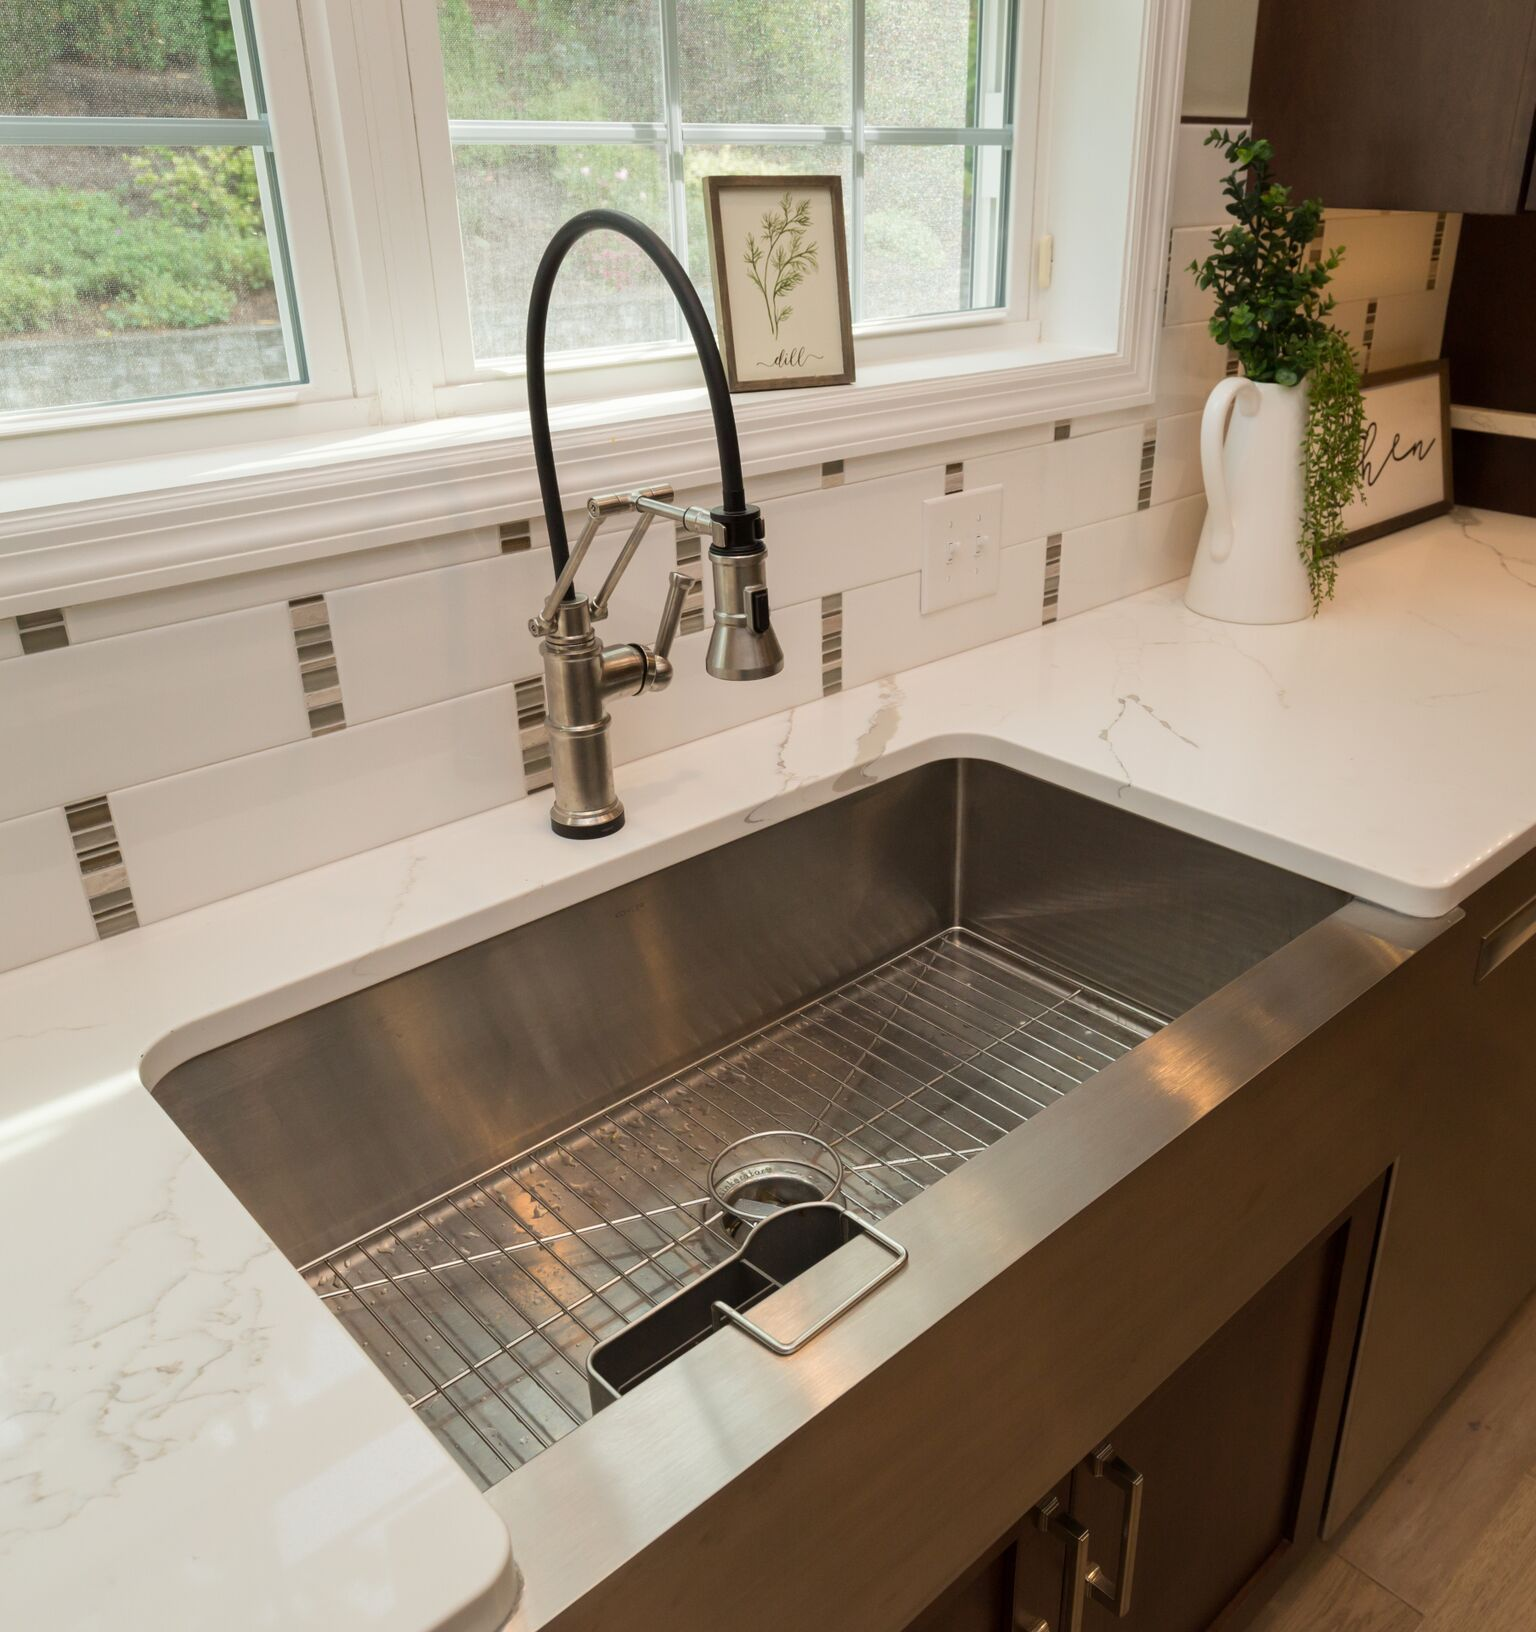 Perfect Kitchen Remodel Sink Faucet And Review In 2020 Kitchen Remodel Sink Kitchen Countertops